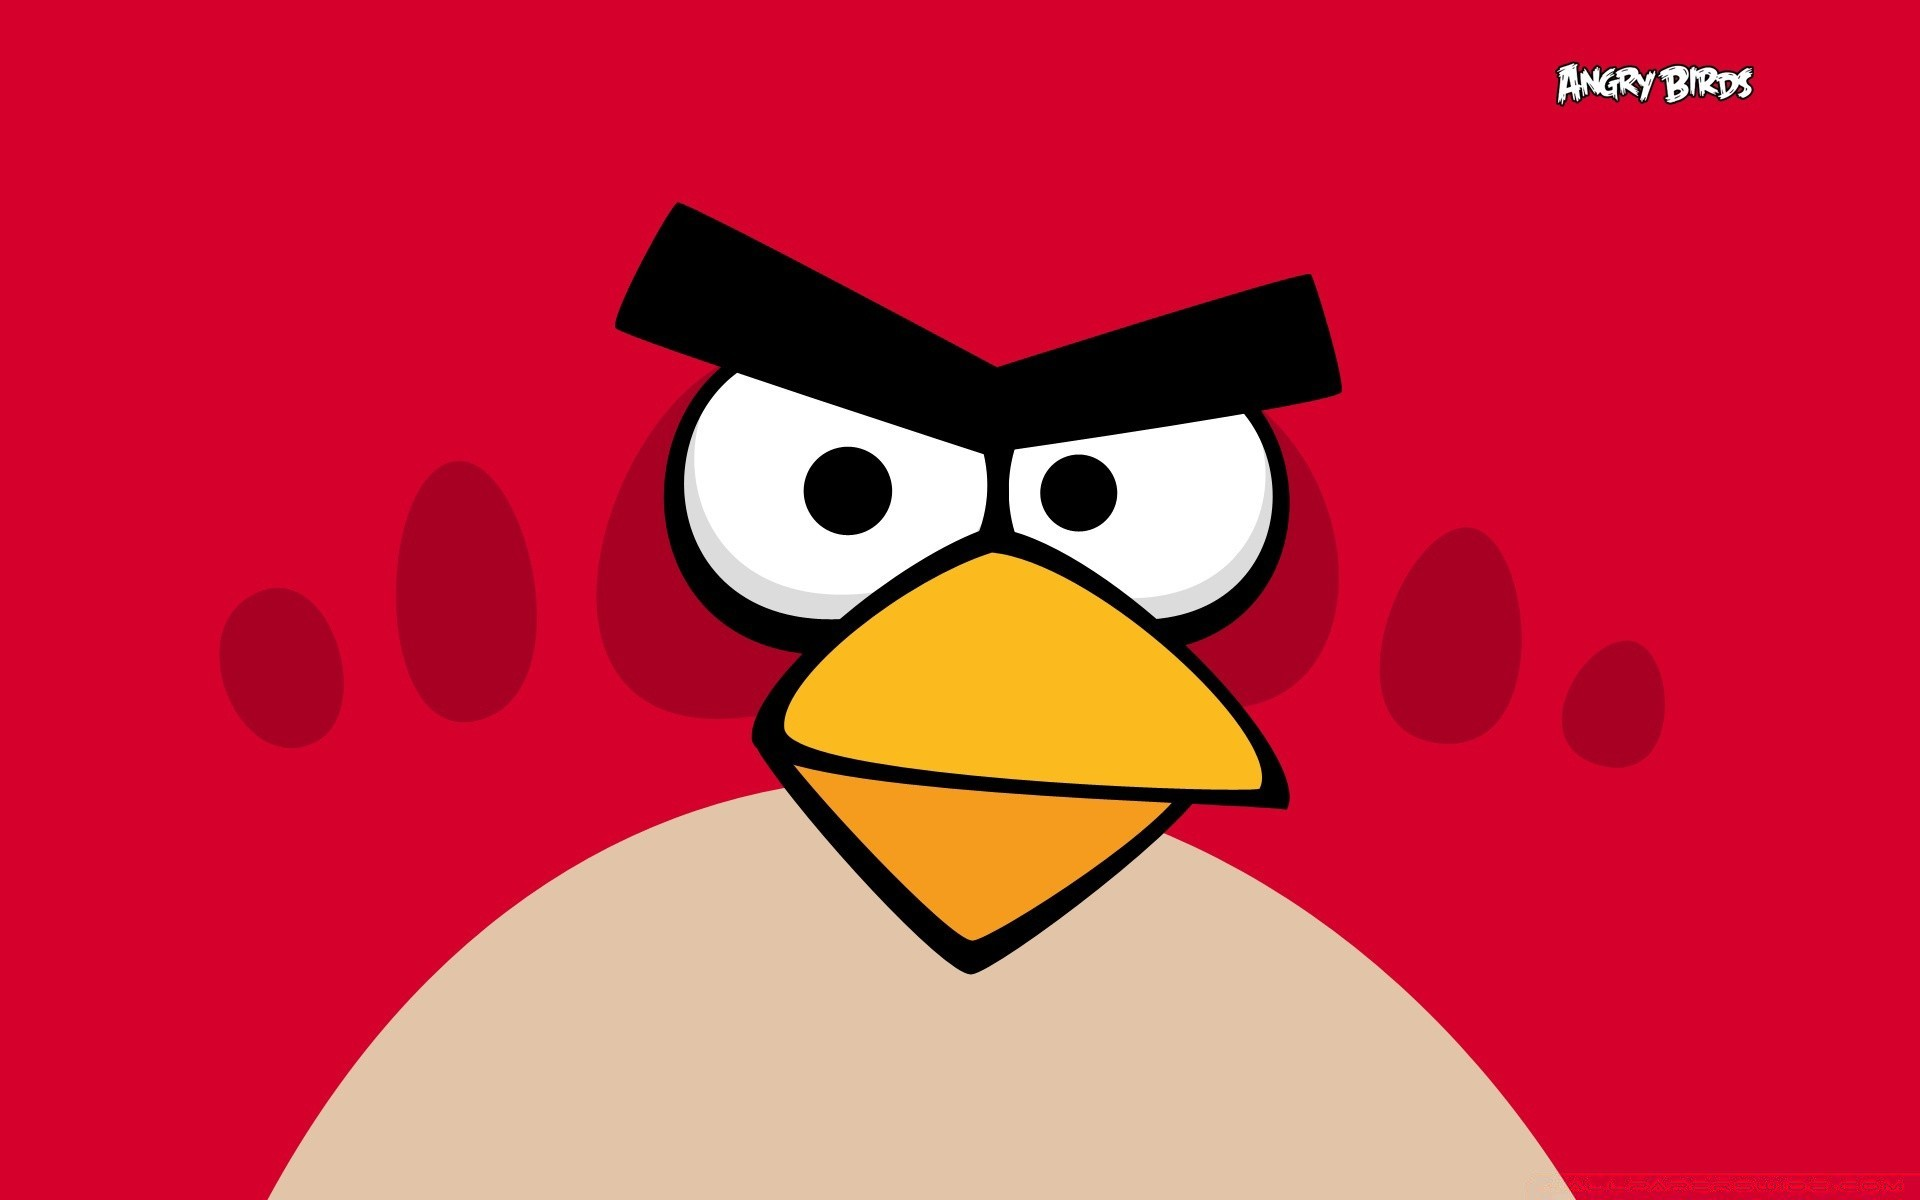 angry birds illustration vector sketch funny love cute fun character hd wallpaper android wallpapers for free